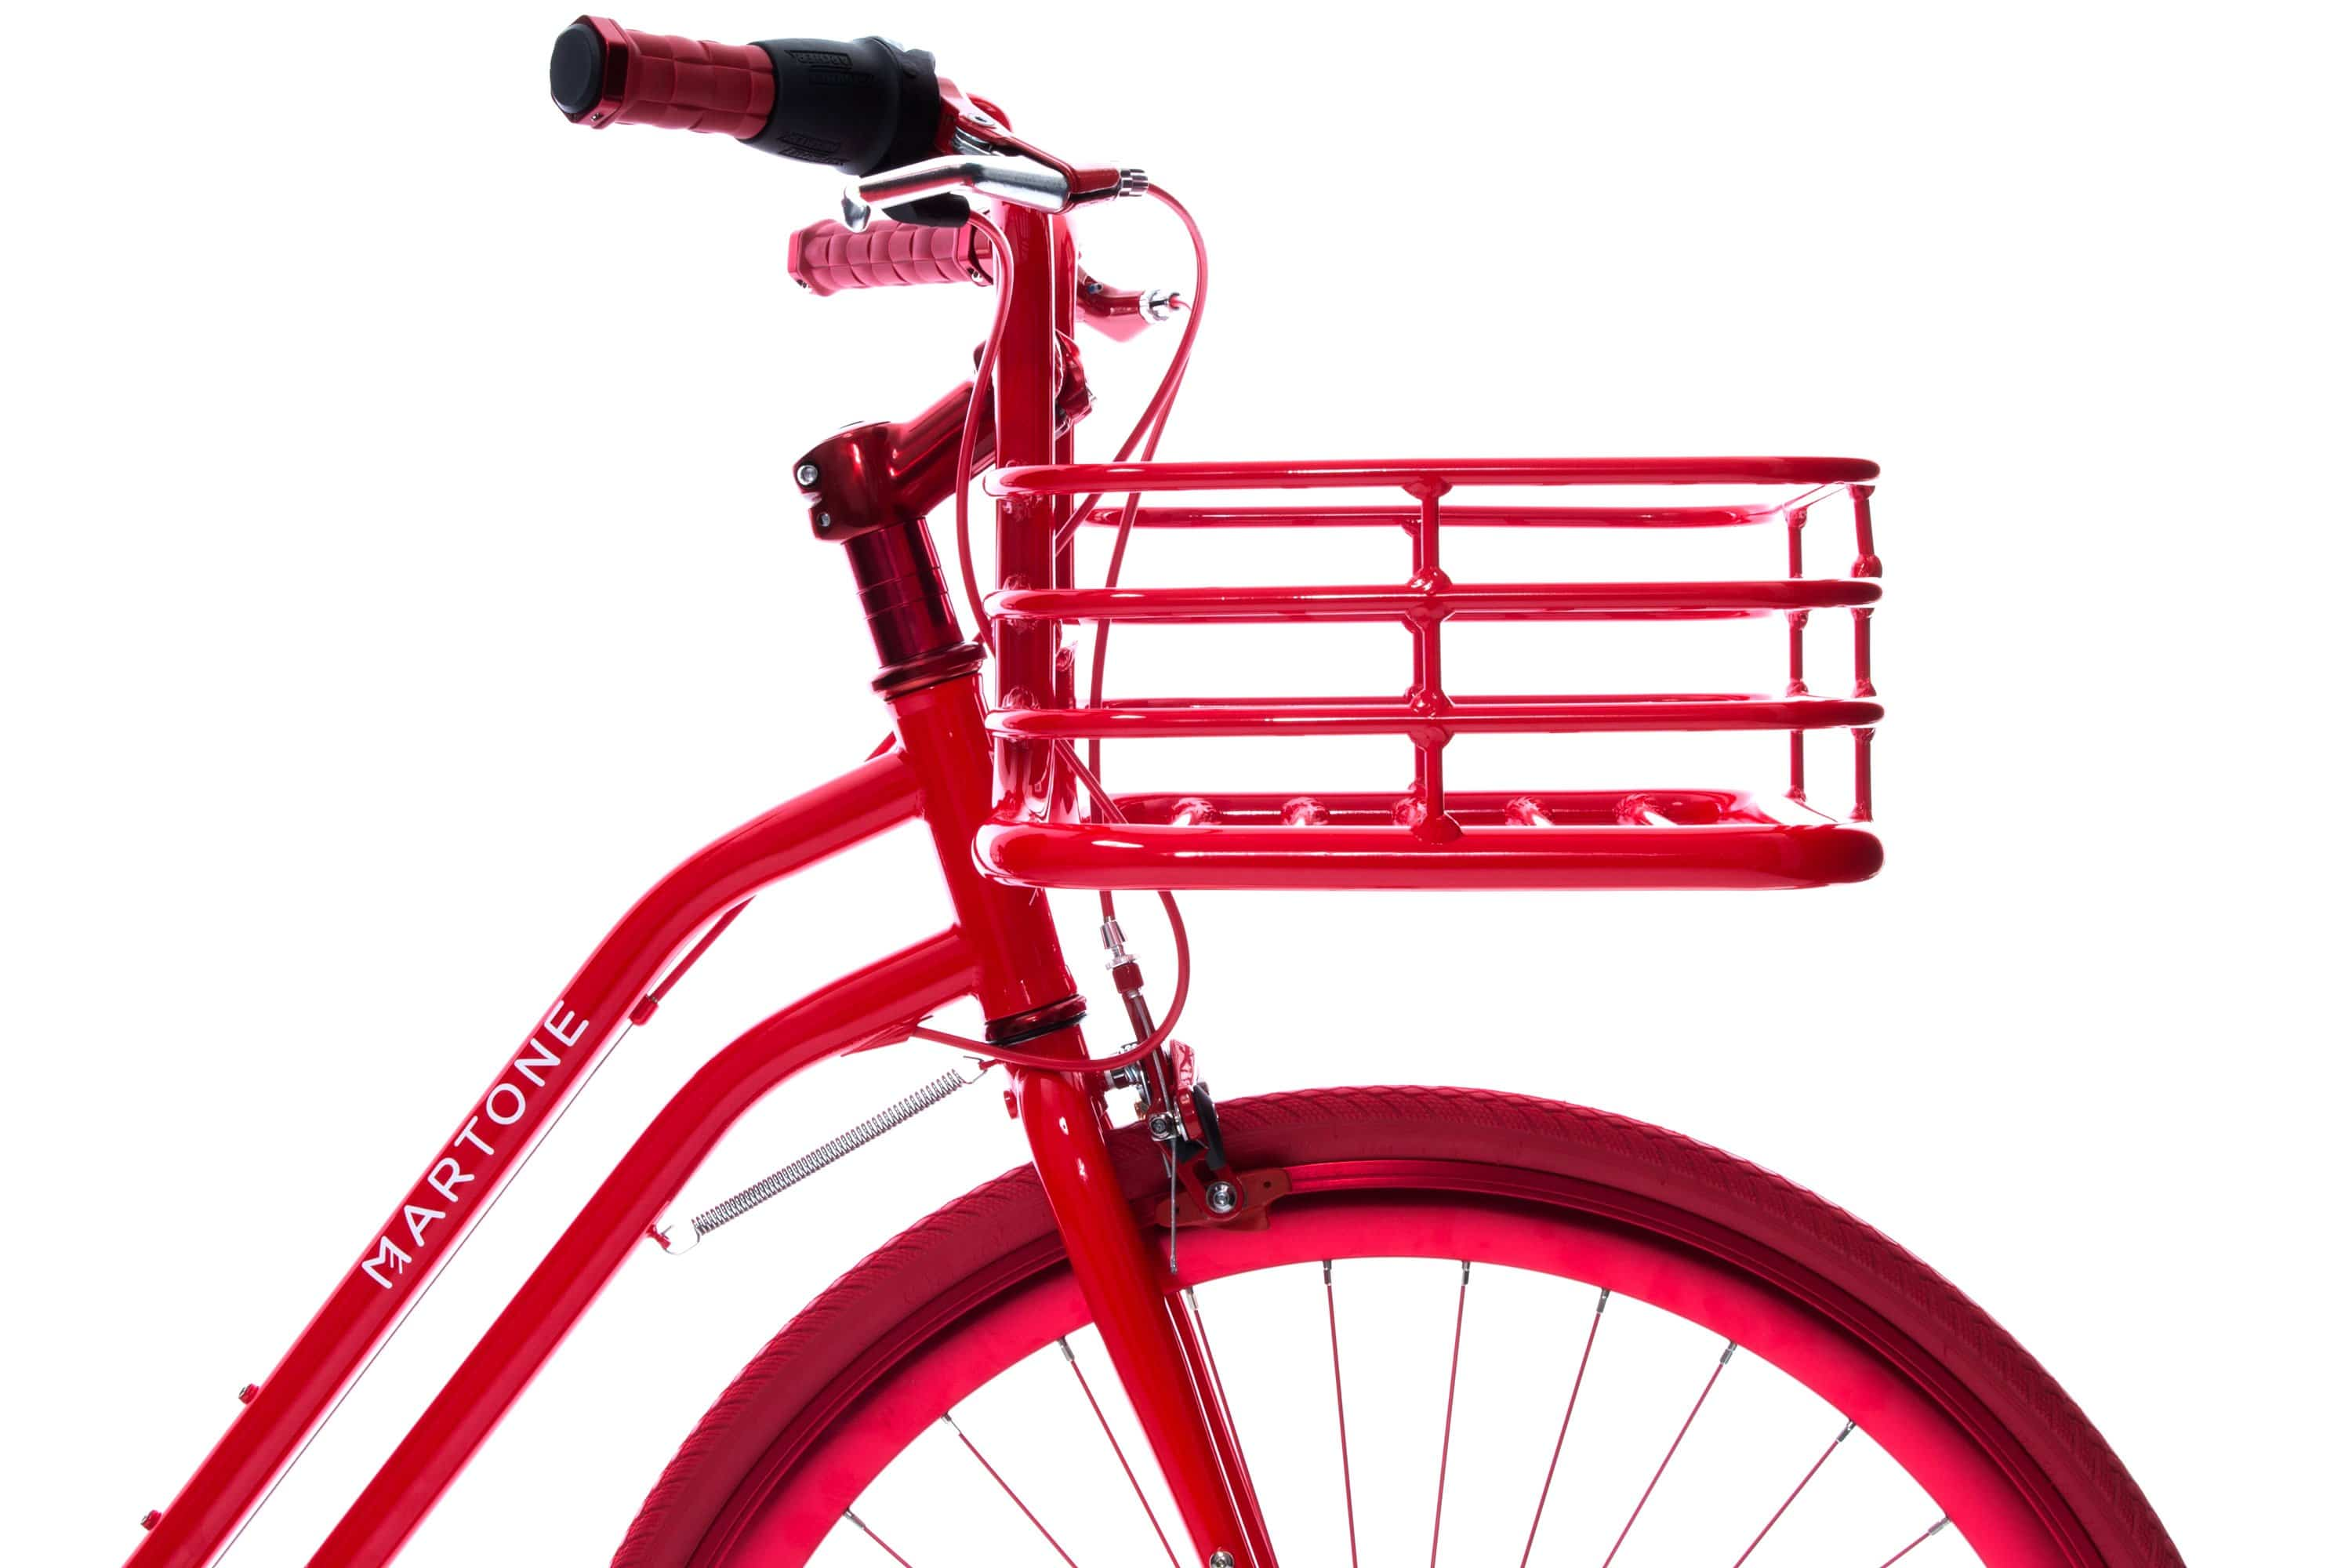 Gramercy Step-Through V3 Bicycle